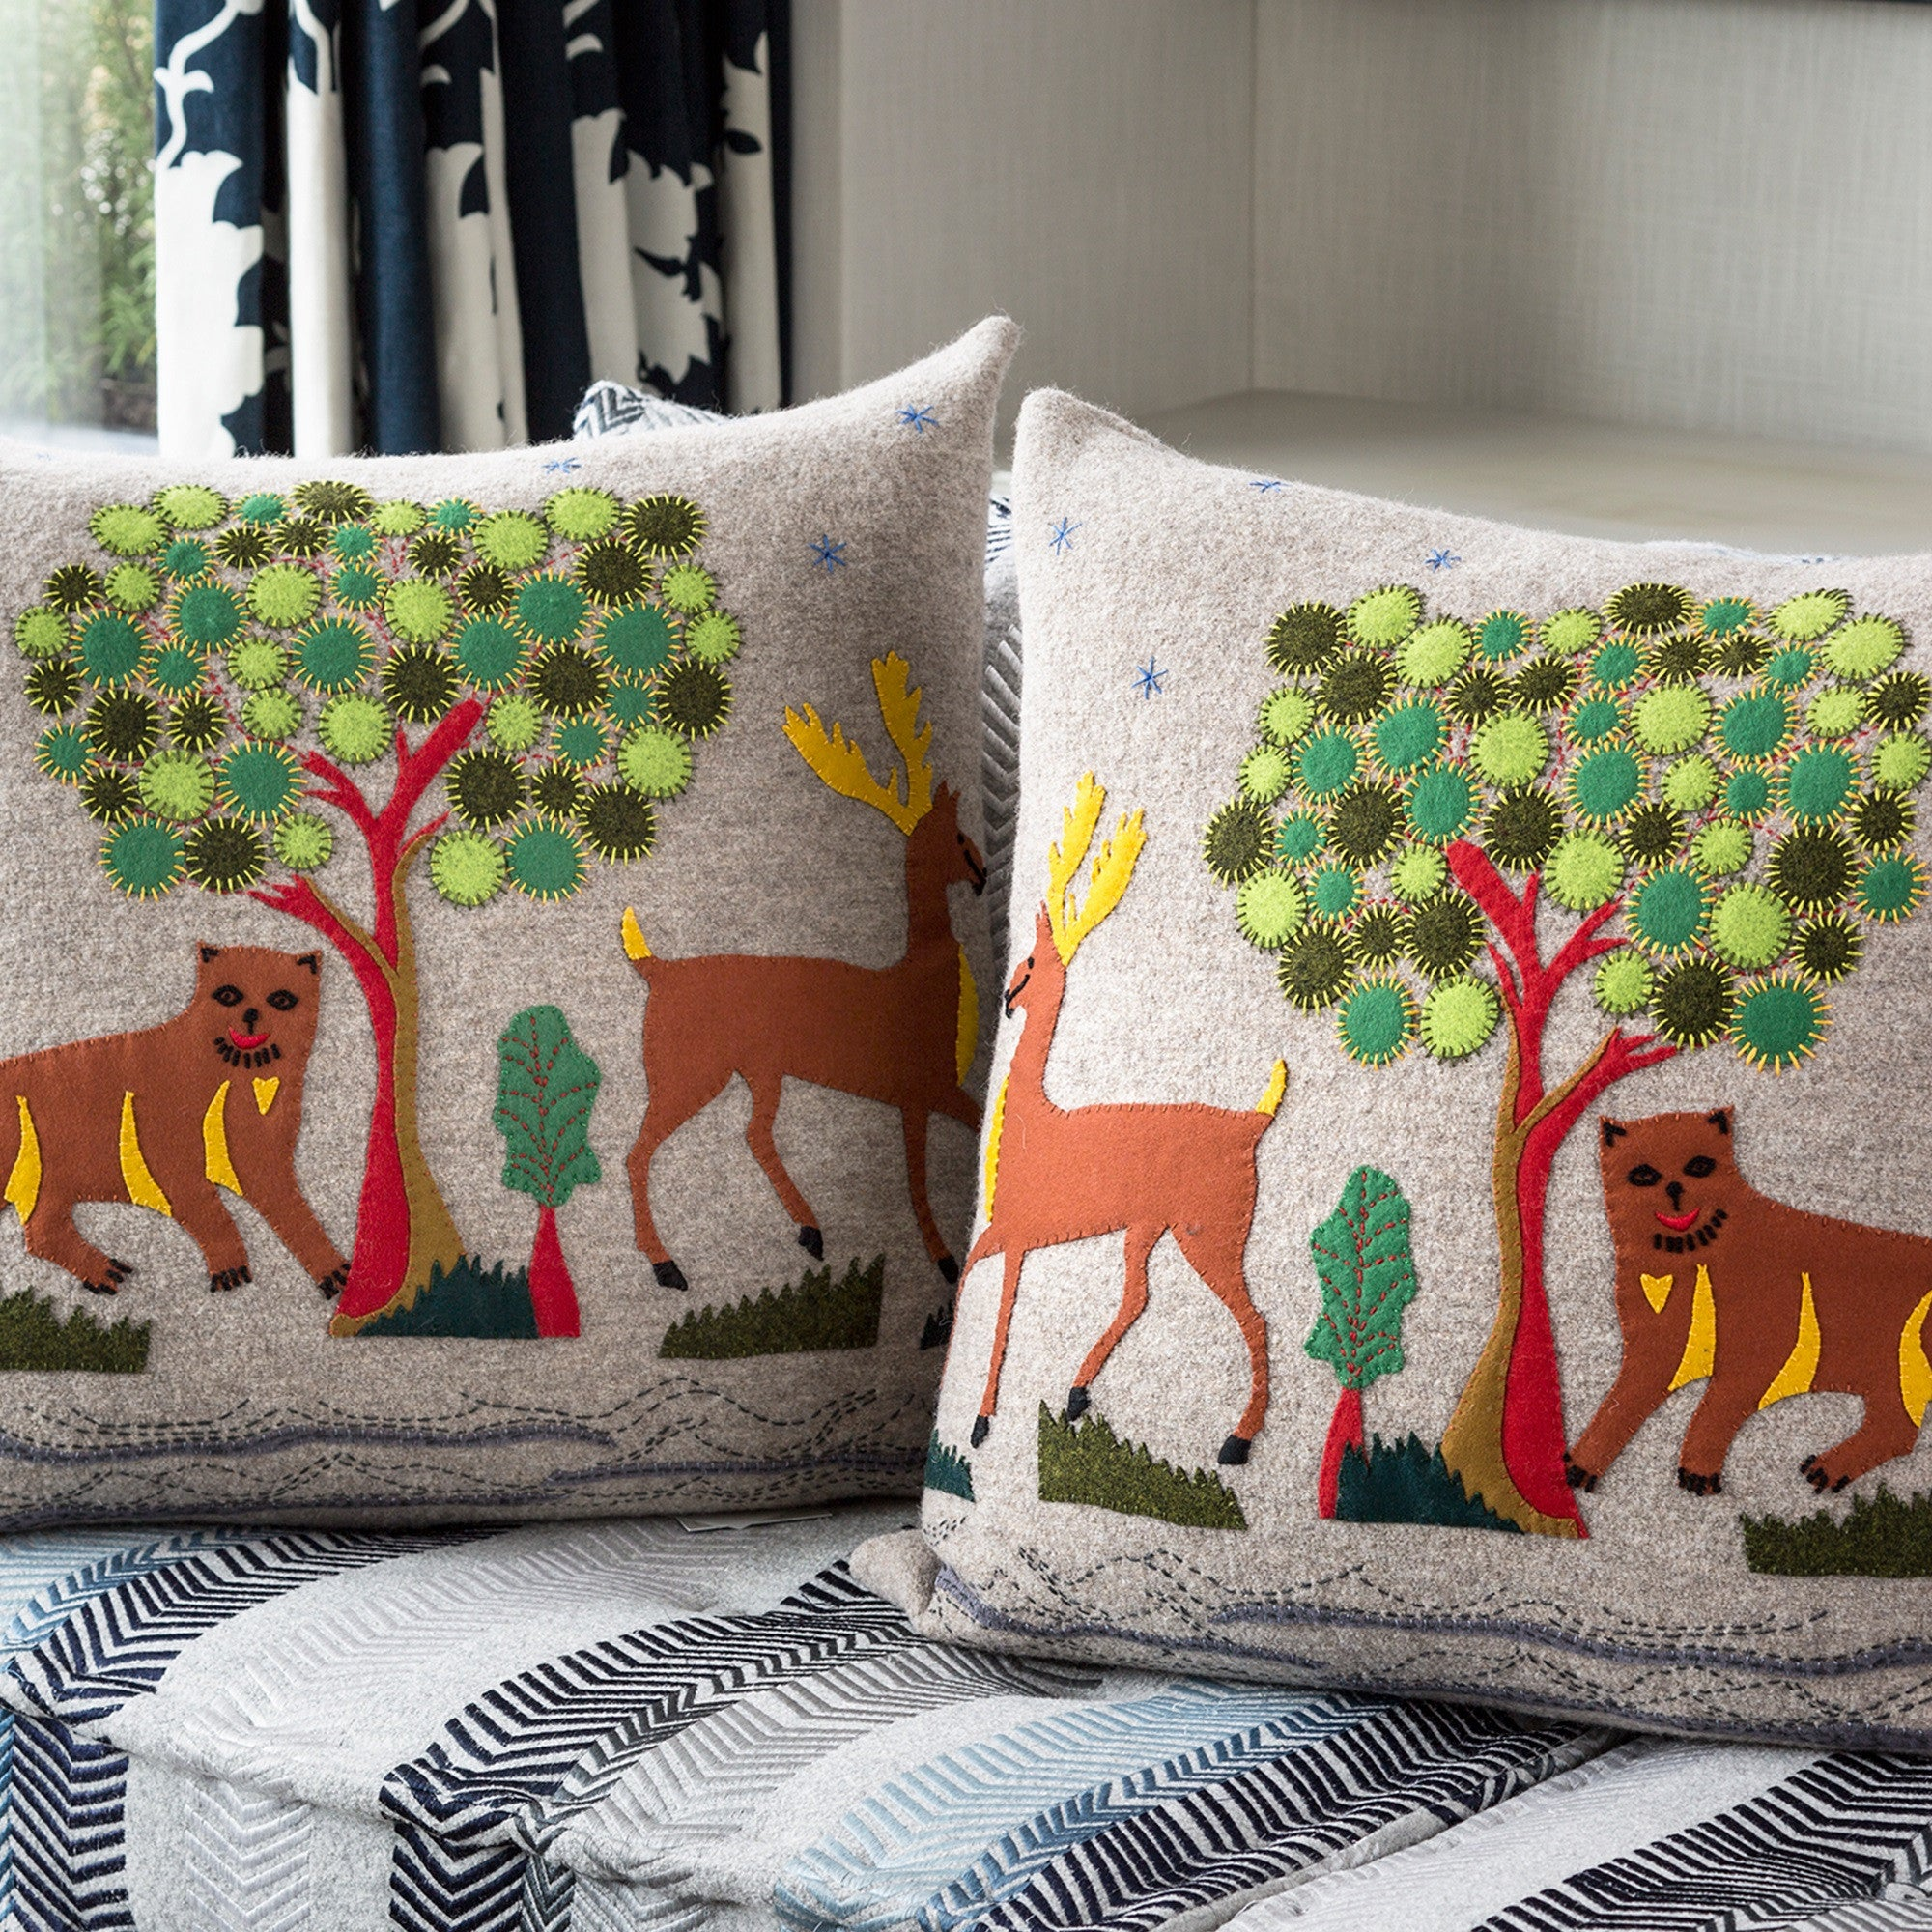 Kit Kemp Folk Pair of Cushions